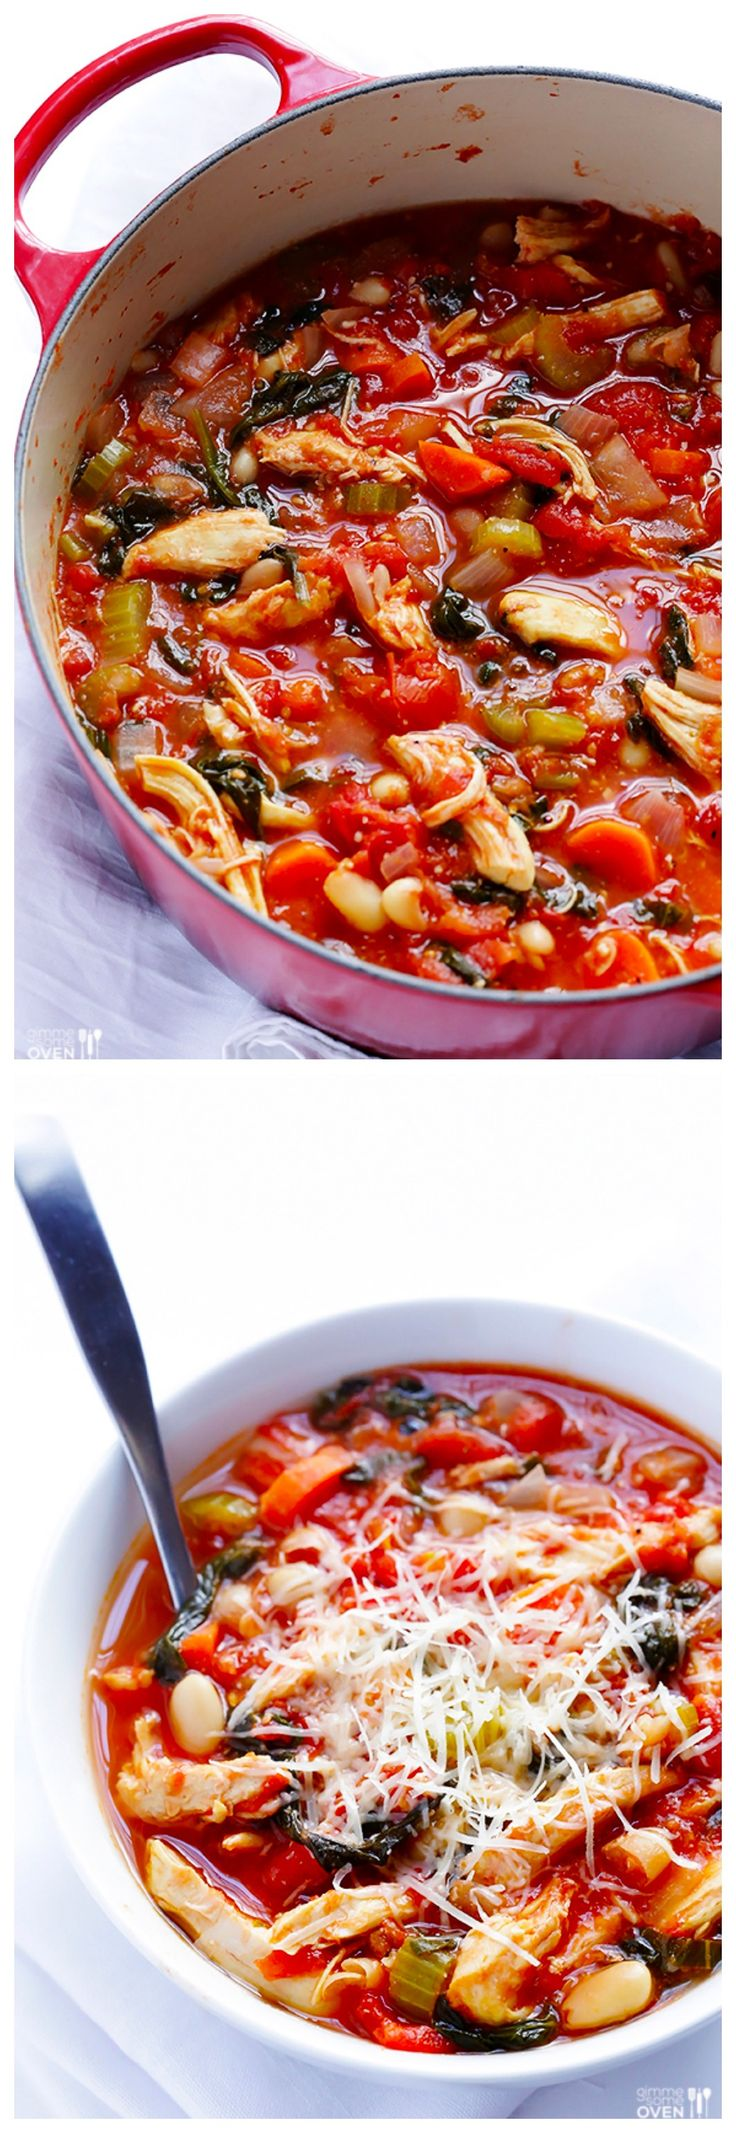 Tomato Basil Chicken Stew -- comforting, simple, and ready in under 30 minutes | gimmesomeoven.com #soup #recipe: Basil Chicken, Soups Stews Chilis, Soups Recipes, Easy Recipes, 30 Minute, Chicken Stew, Soup Recipes, Tomatoes Basil, Gimmesomeoven Com Soups